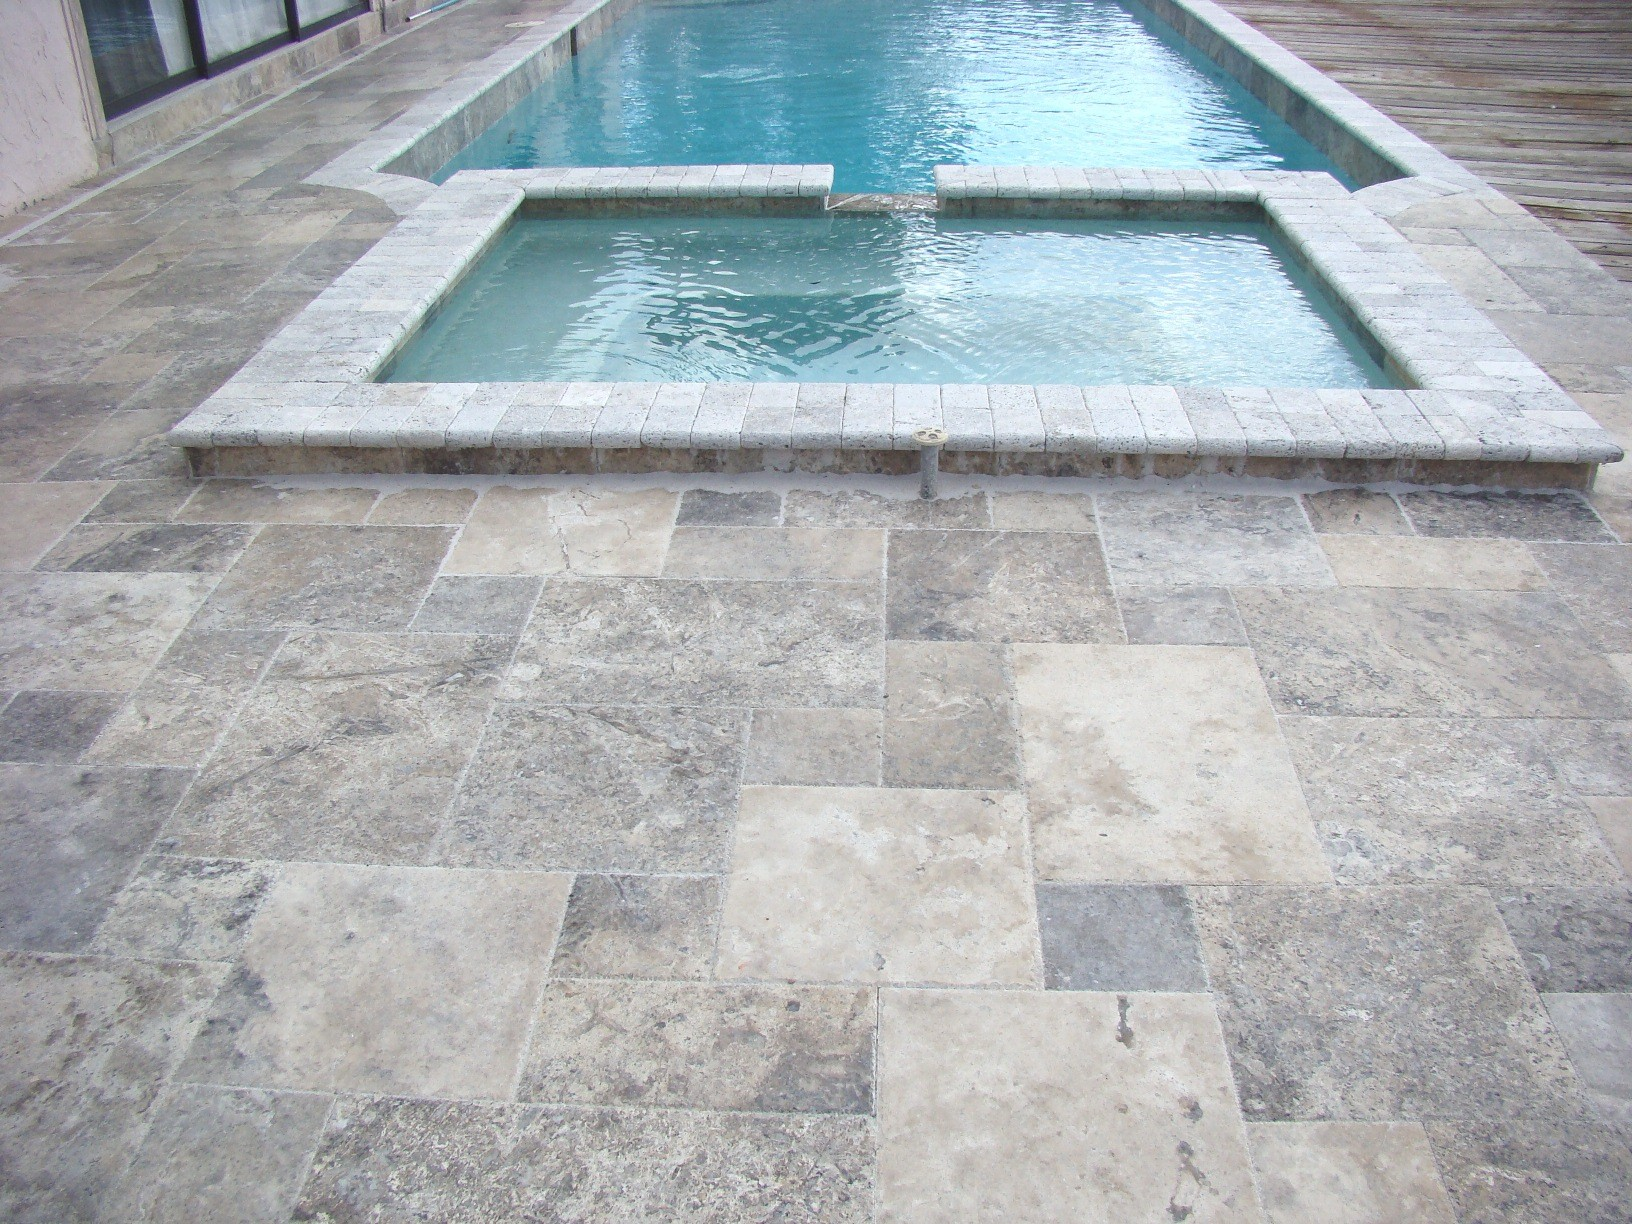 8 X 8 Silver Travertine Tumbled Pavers For Driveway, Patio And Pool Deck